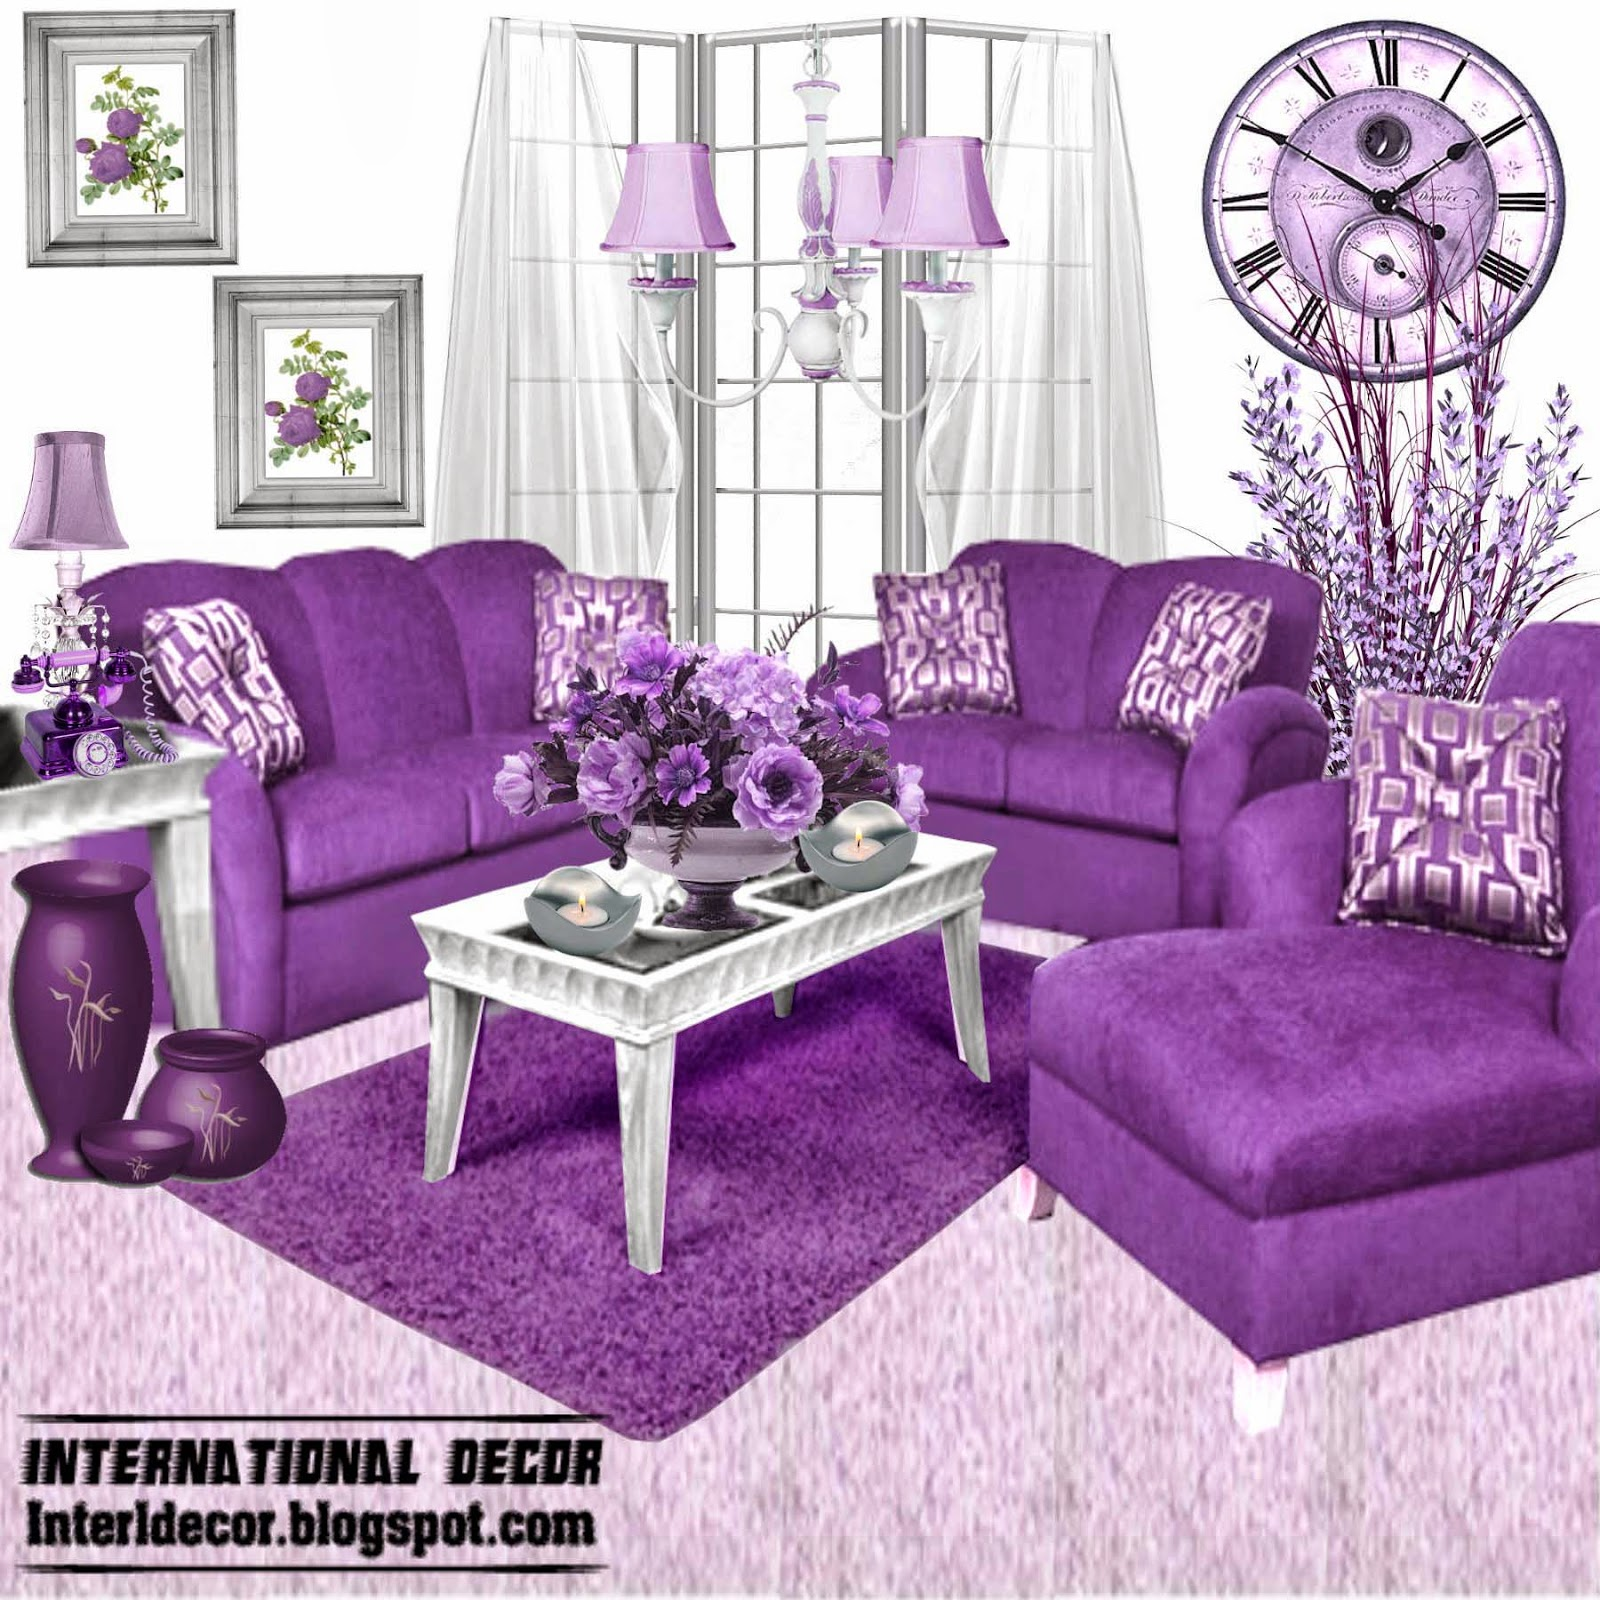 Luxury purple furniture sets sofas chairs for living for Family room furniture sets